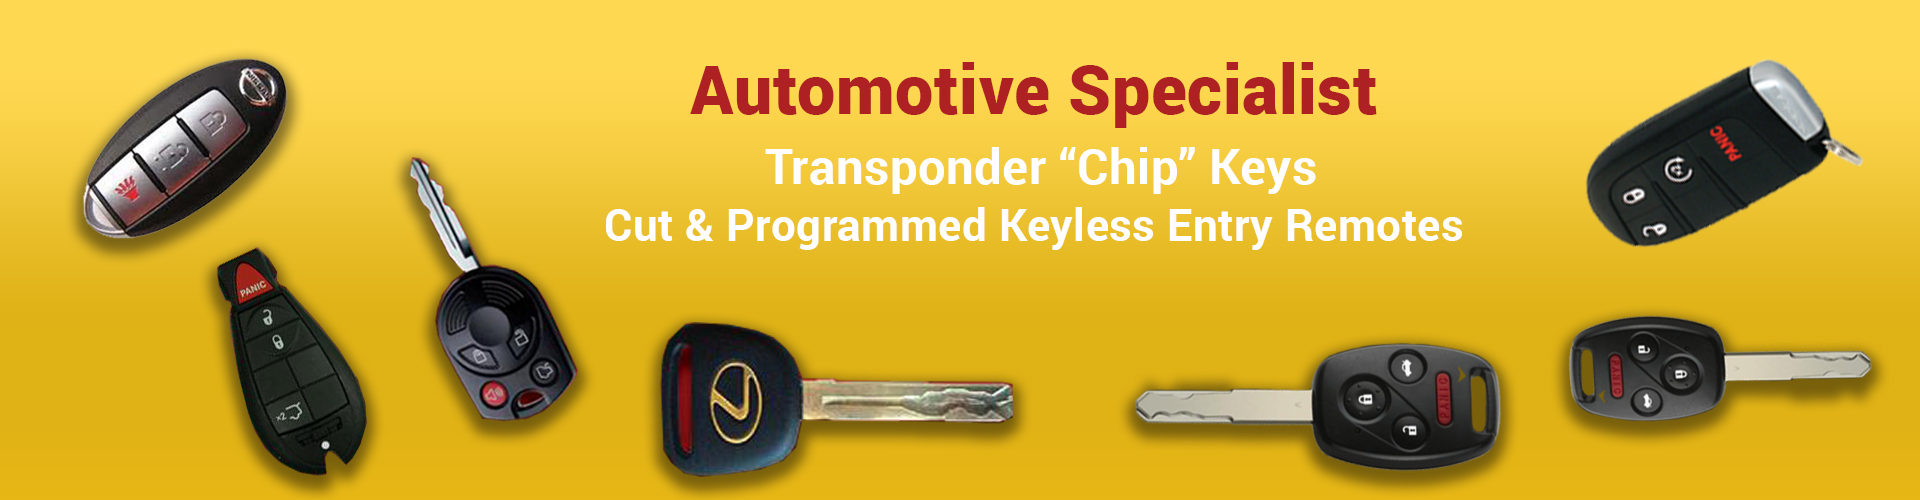 Automative specialist transponder chip keys